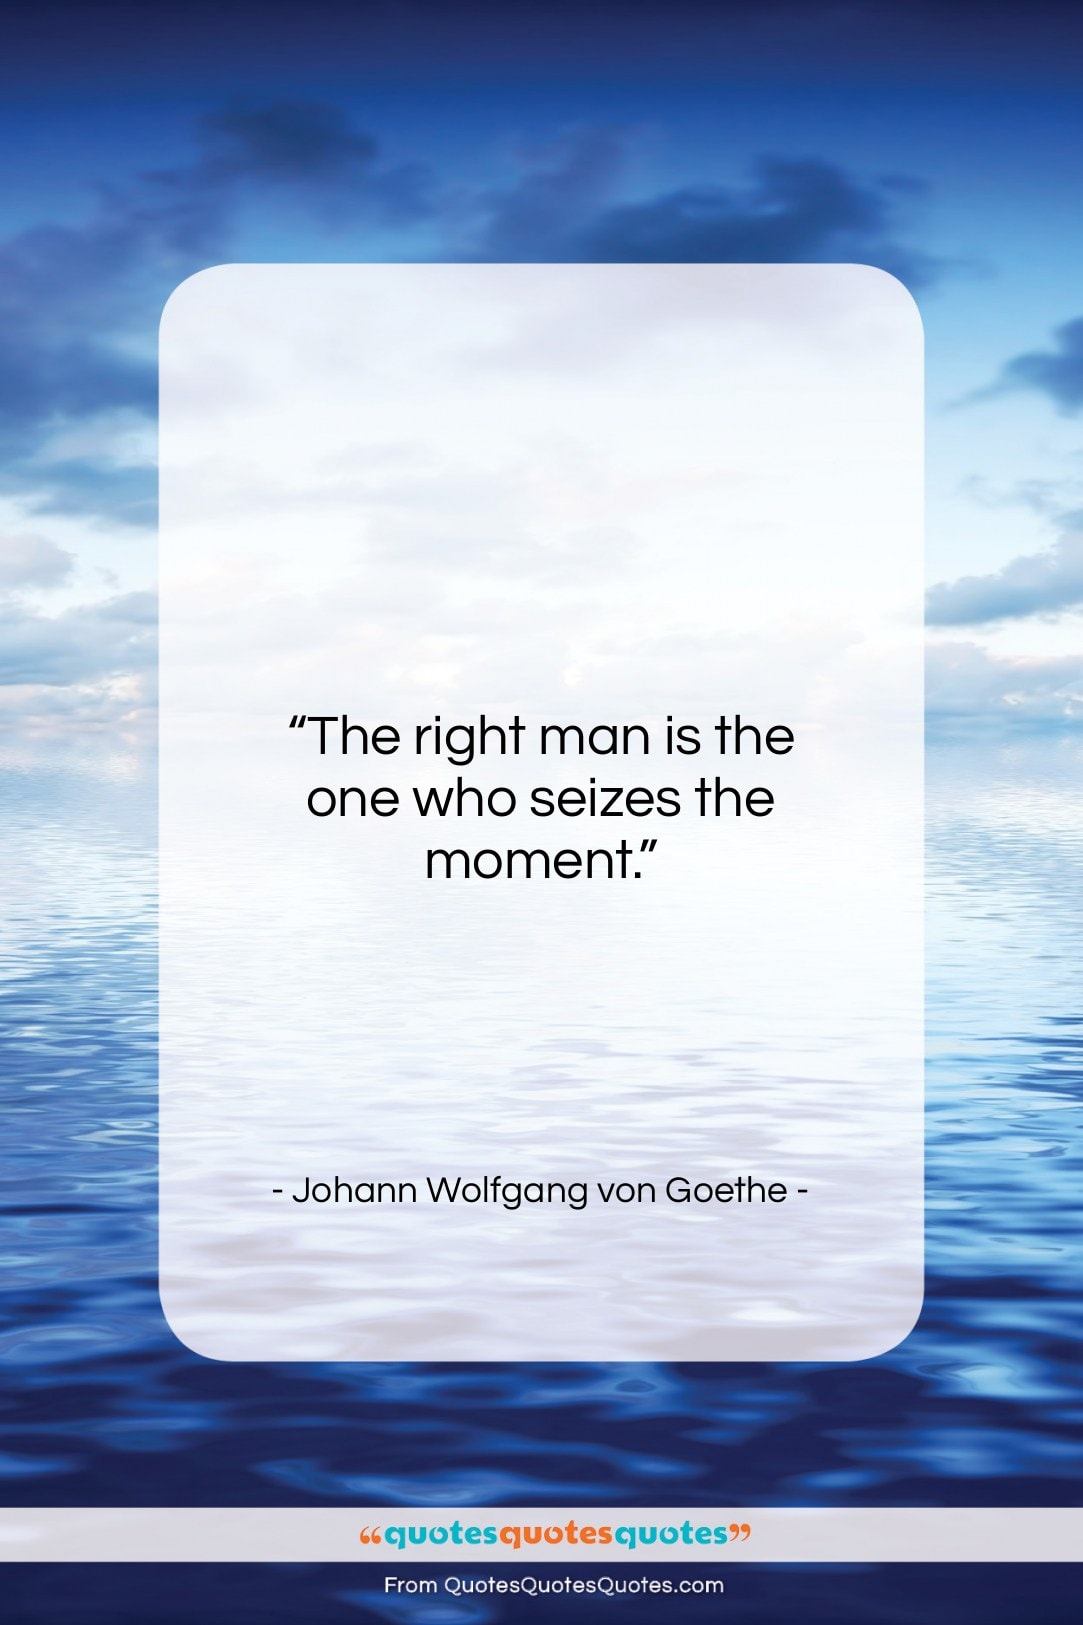 Get The Whole Johann Wolfgang Von Goethe Quote The Right Man Is